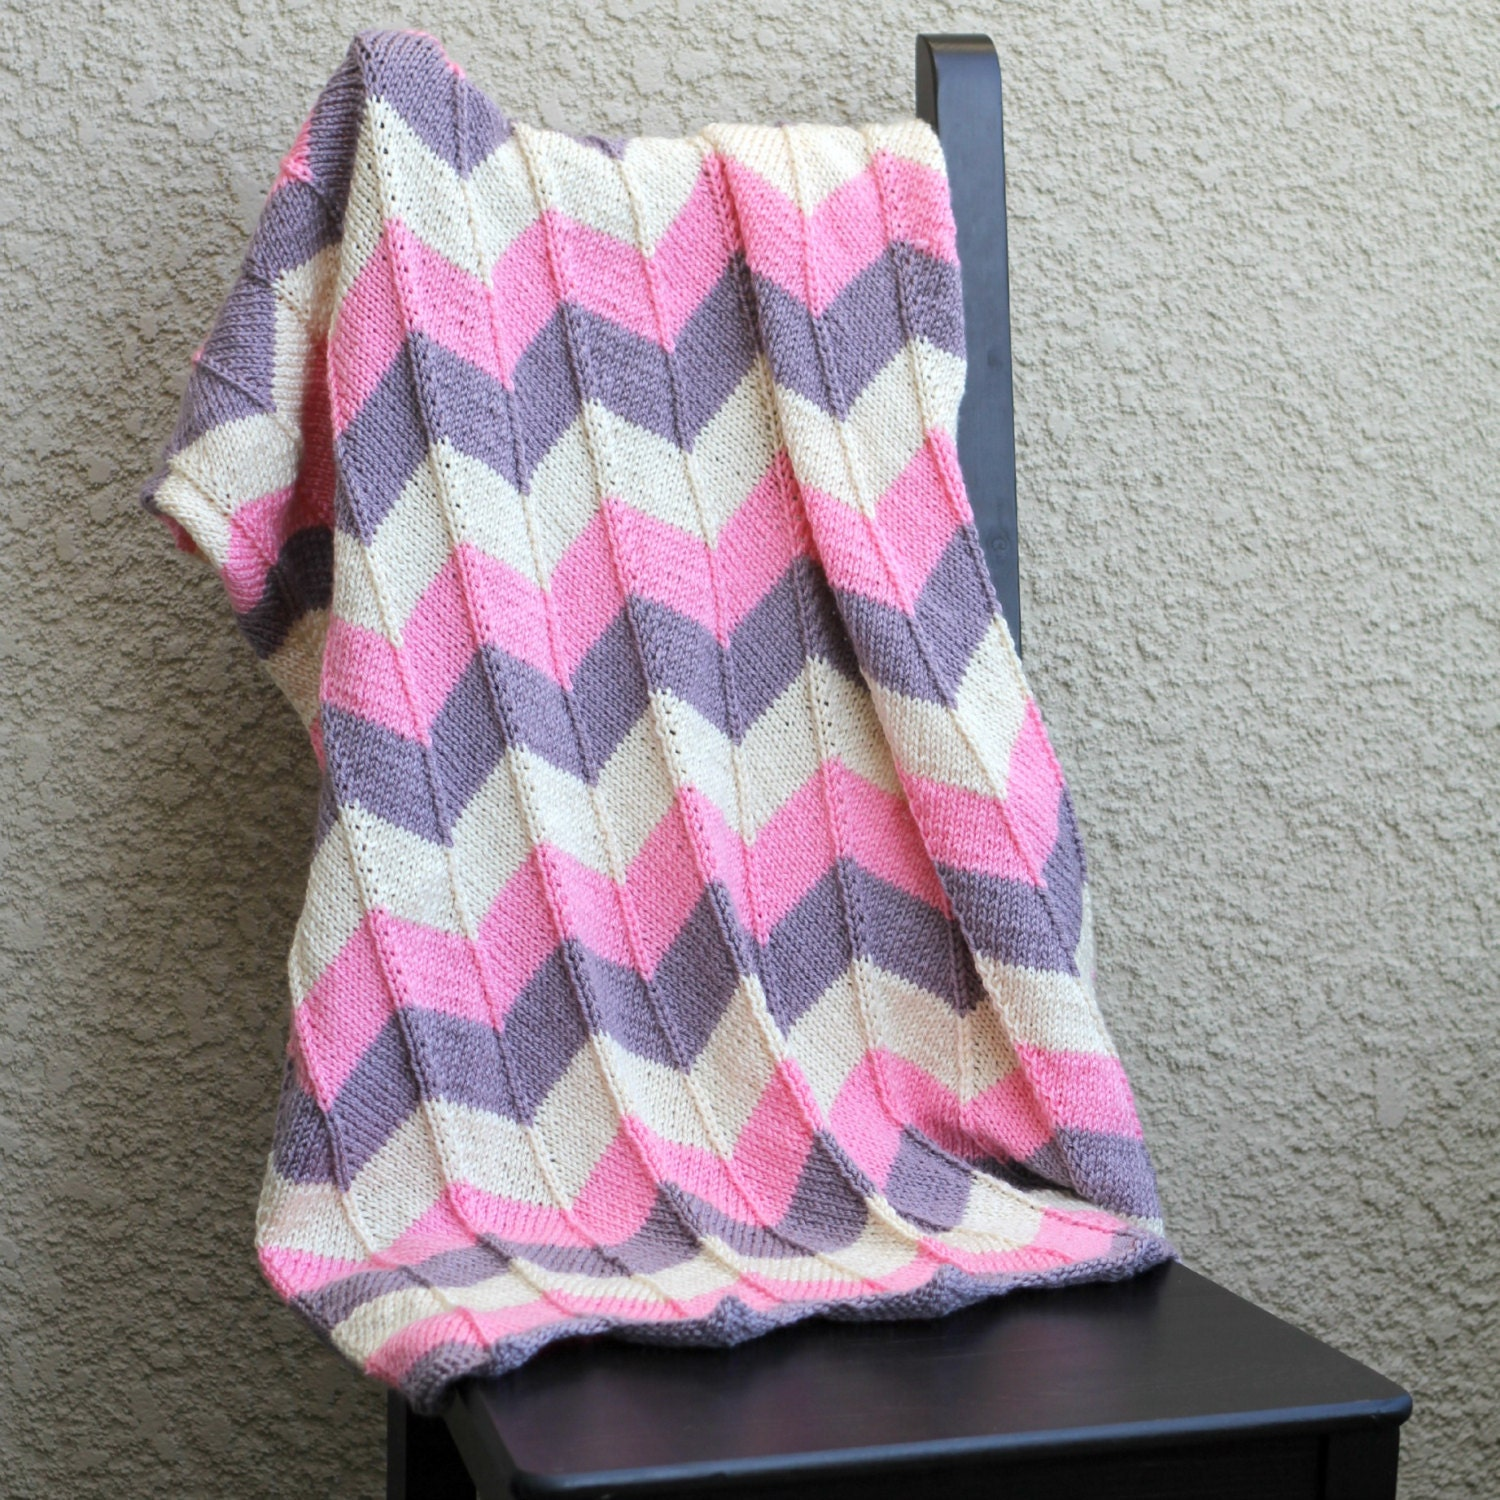 Chevron Afghan Pattern Knit : Knit blanket chevron blanket baby blanket in purple pink